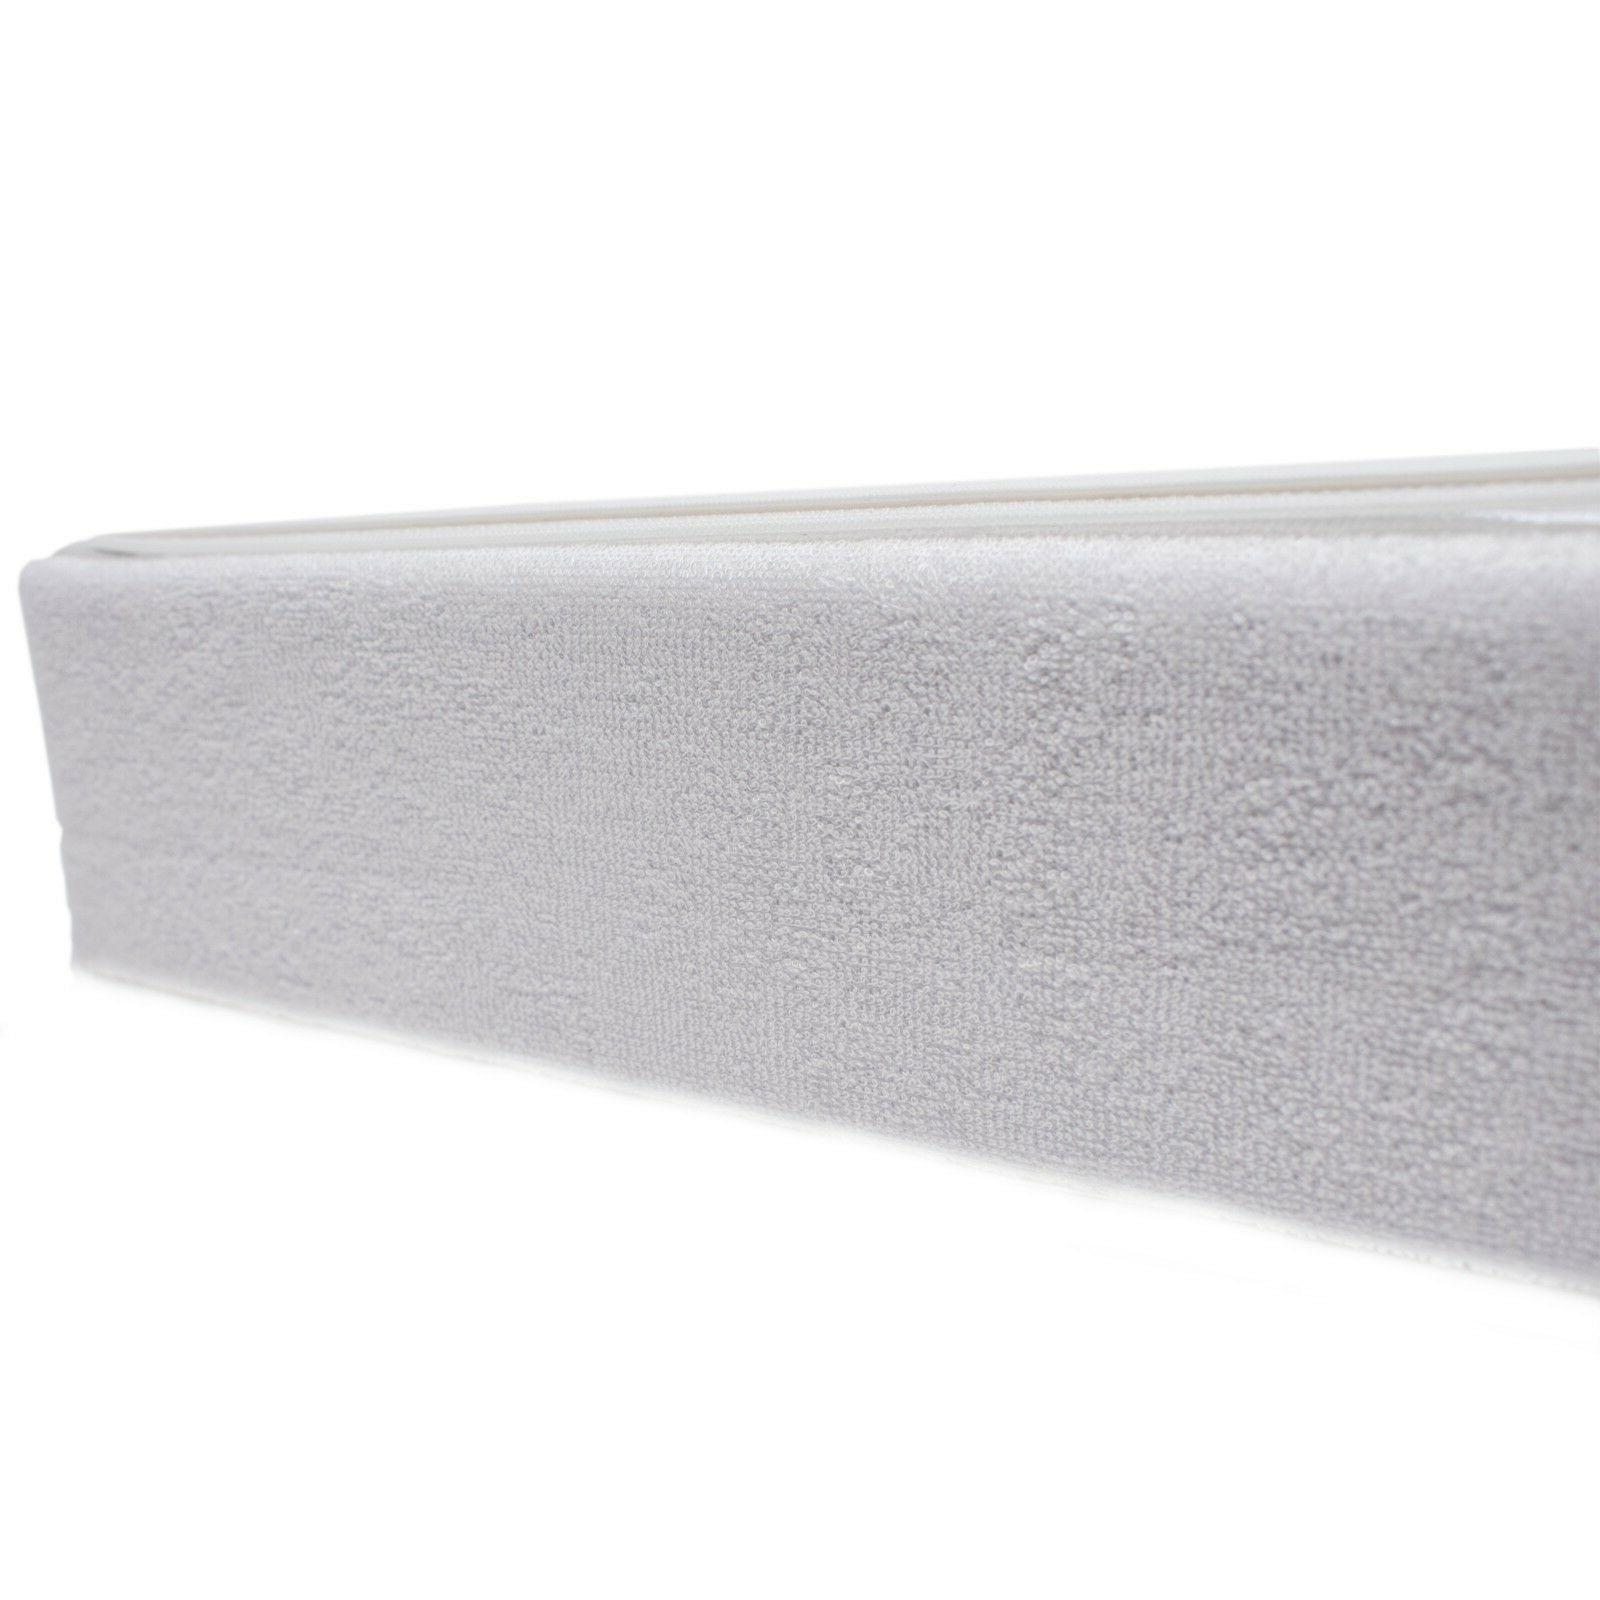 Mattress Protector Luxury Cover Pad